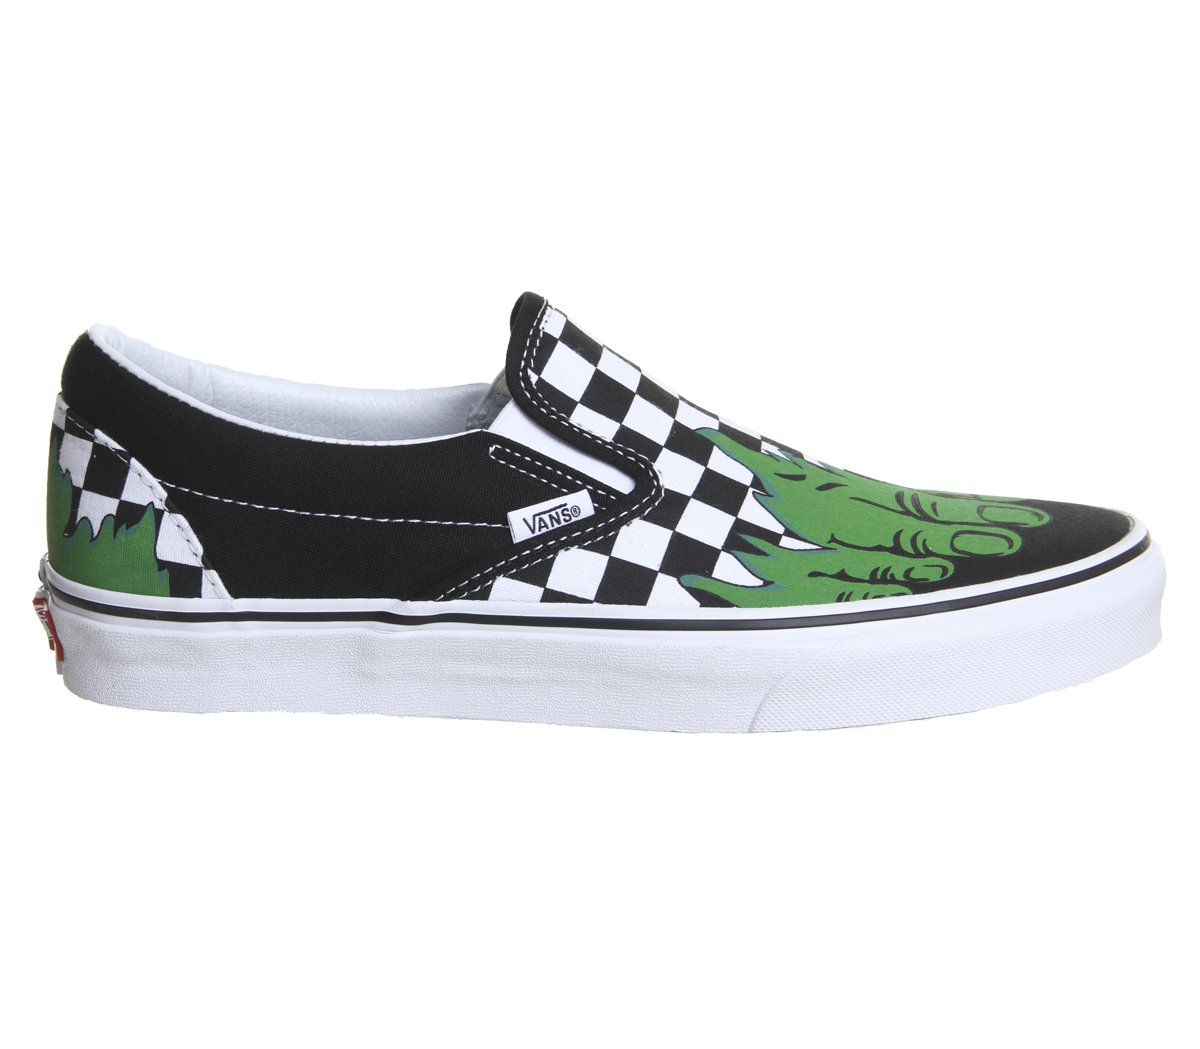 Vans Unisex Classic (Checkerboard) Slip-On Skate Shoe B077THHZVB 11.5 M US Women / 10 M US Men|(Marvel) Hulk/Checkerboard